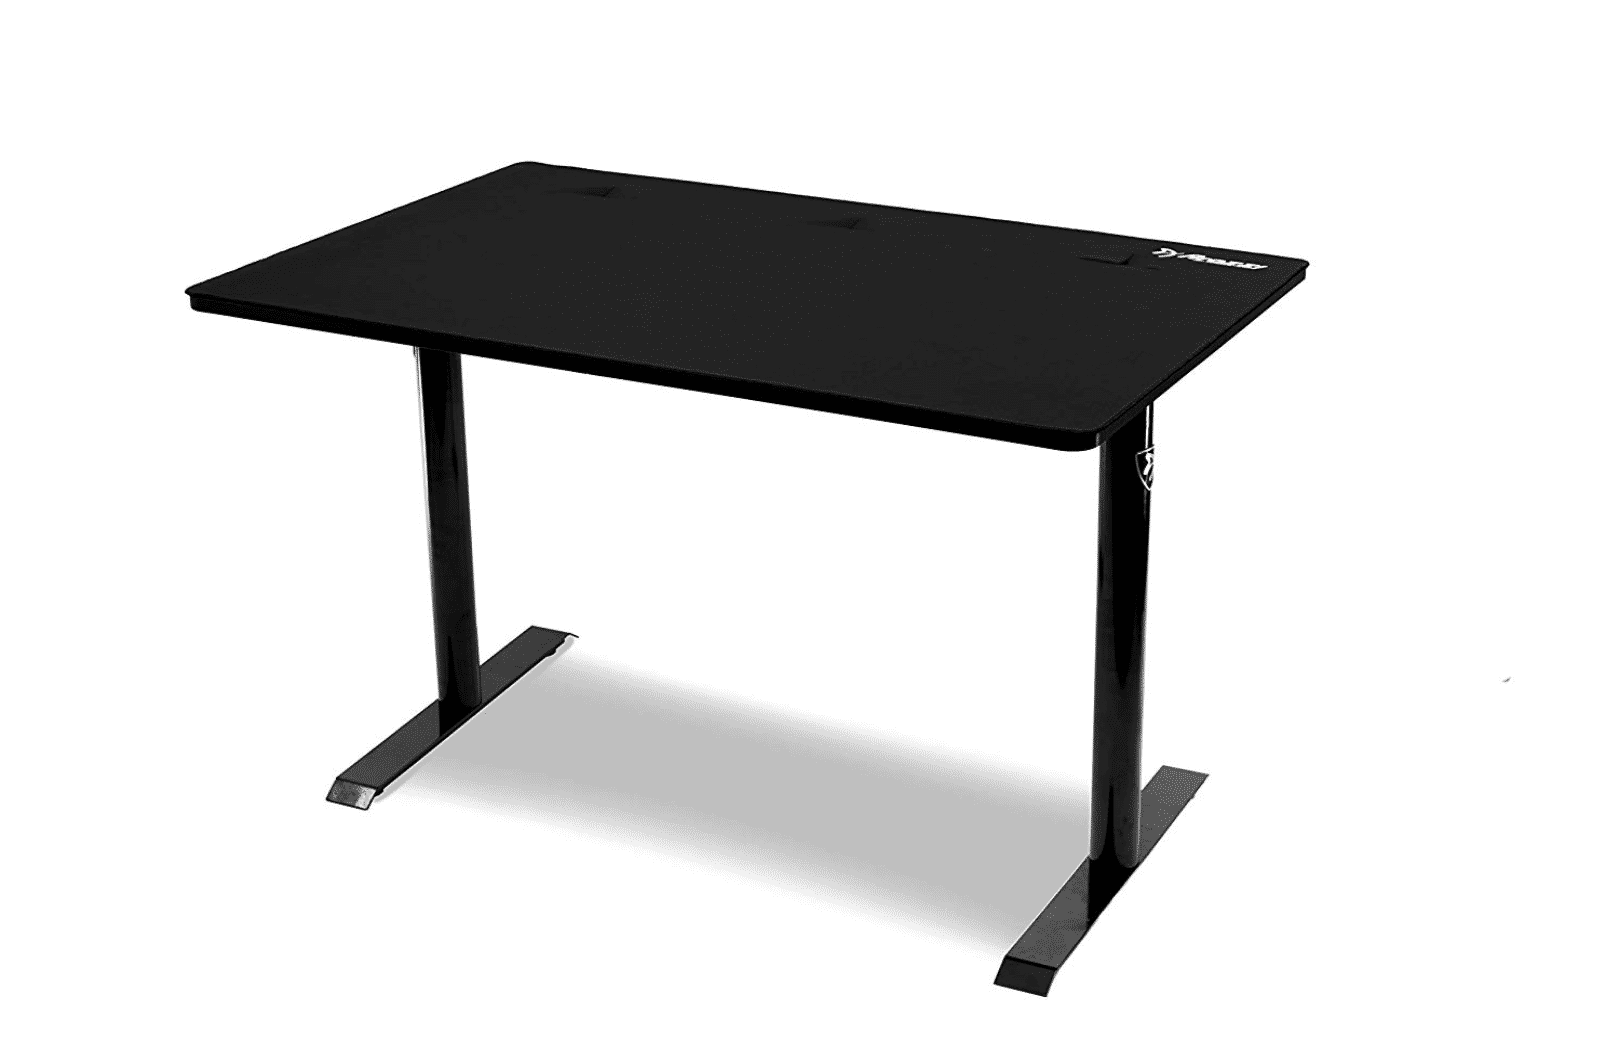 This is a Gaming Desk.